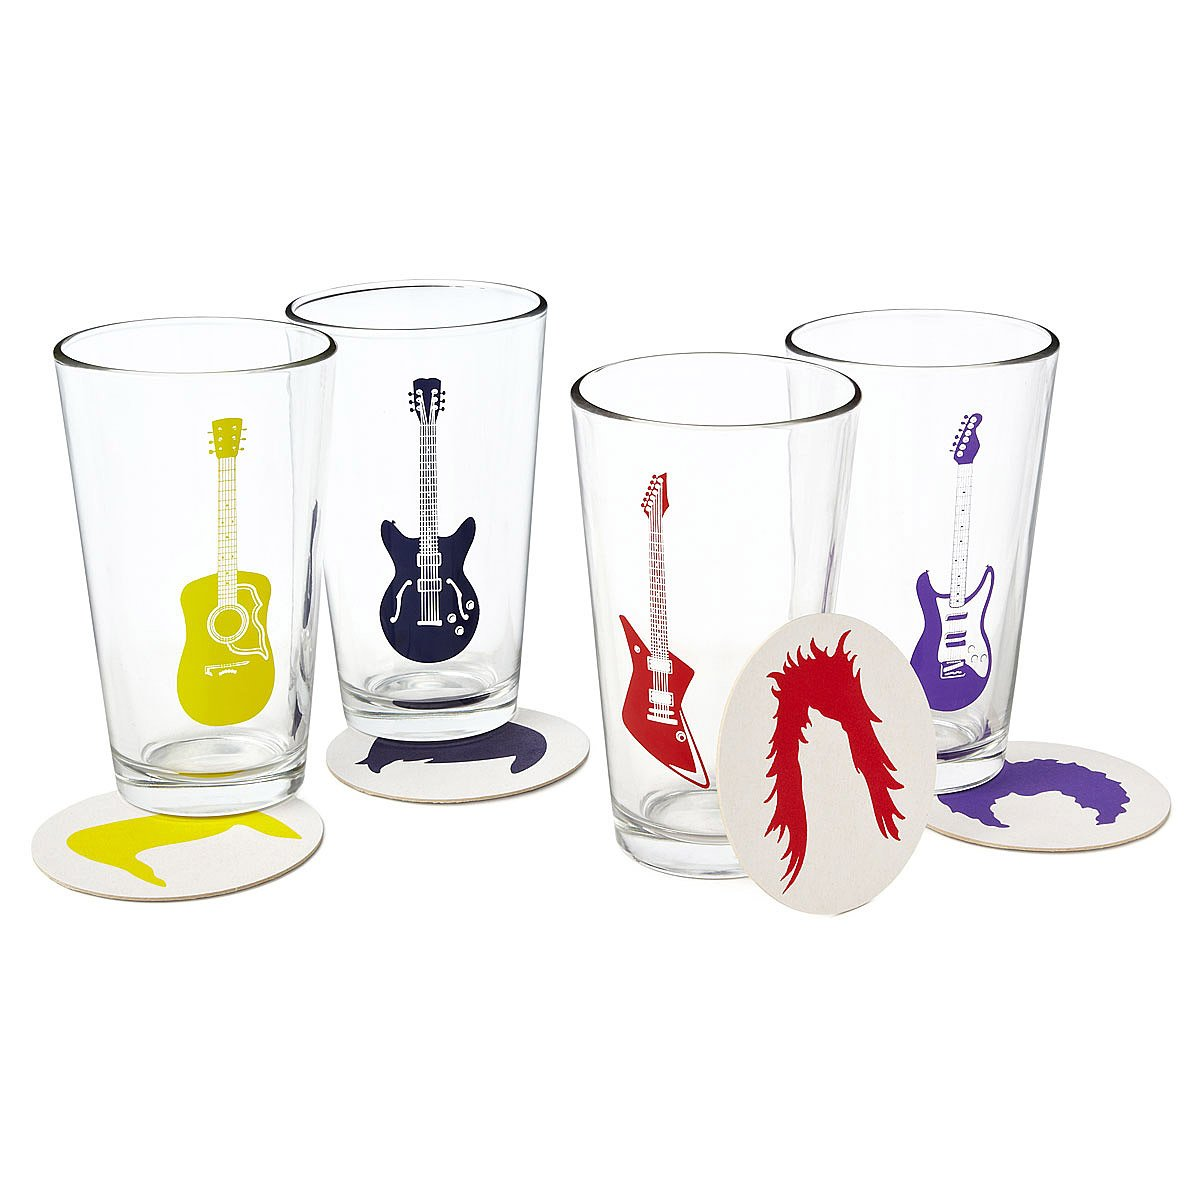 guitar glasses and coasters  rock glass music drink coasters  - guitar glasses and coasters  thumbnail